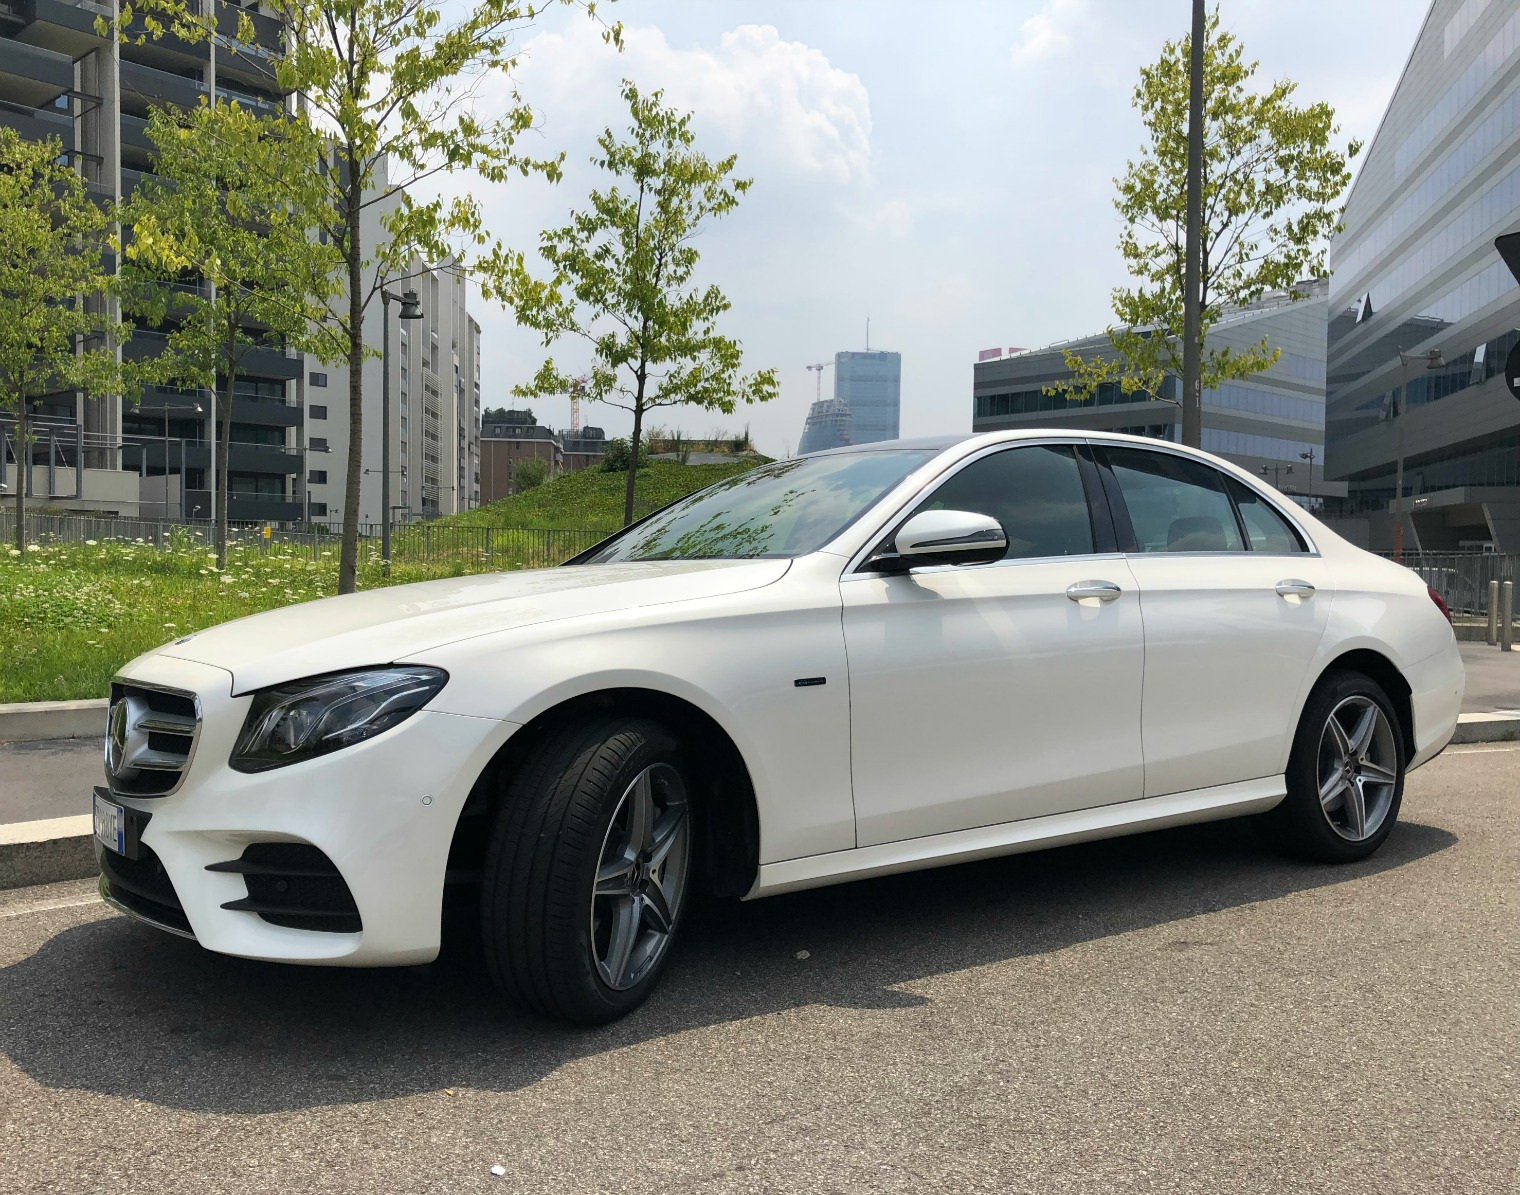 nuova Mercedes Classe E ibrida plug-in